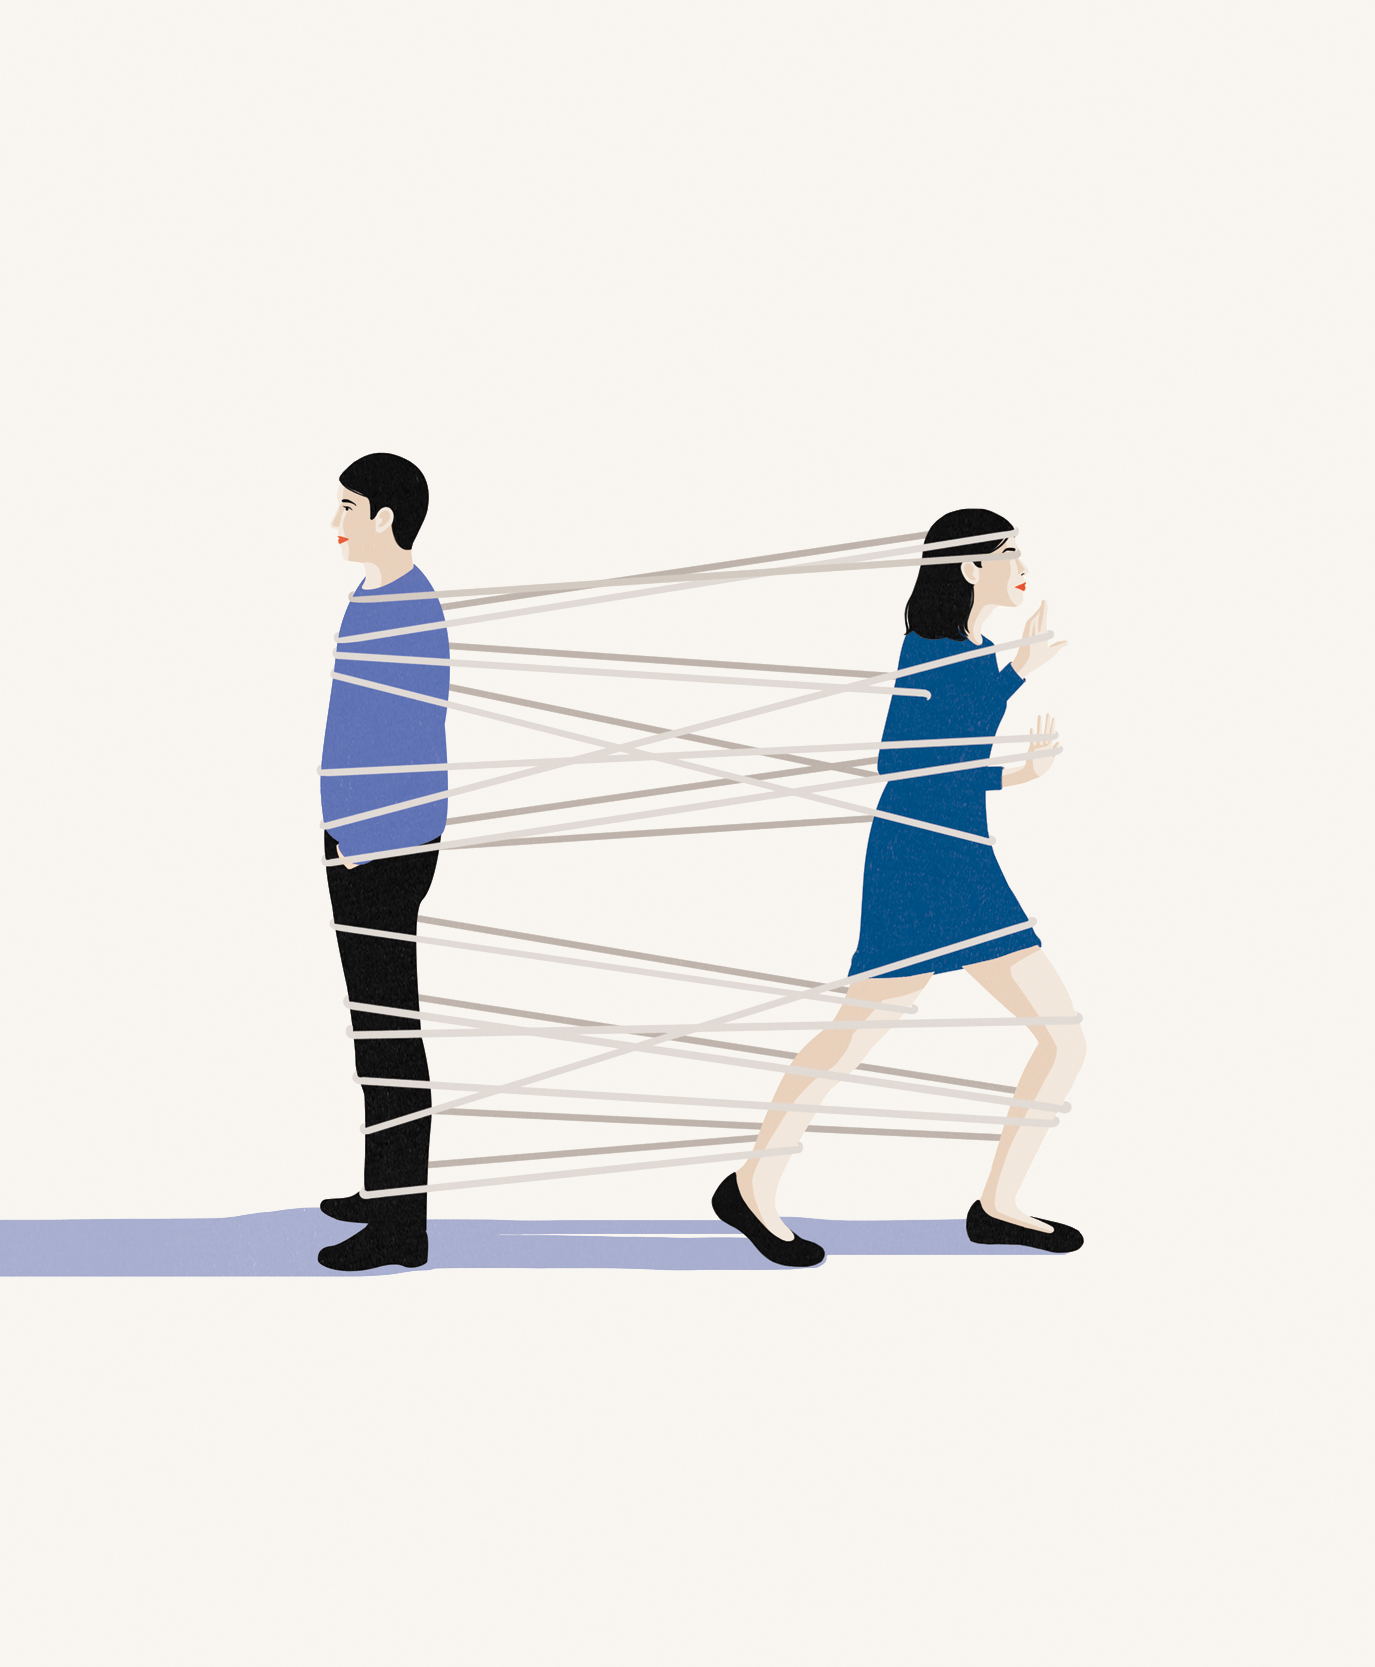 Illustration: Woman tied to ex boyfriend